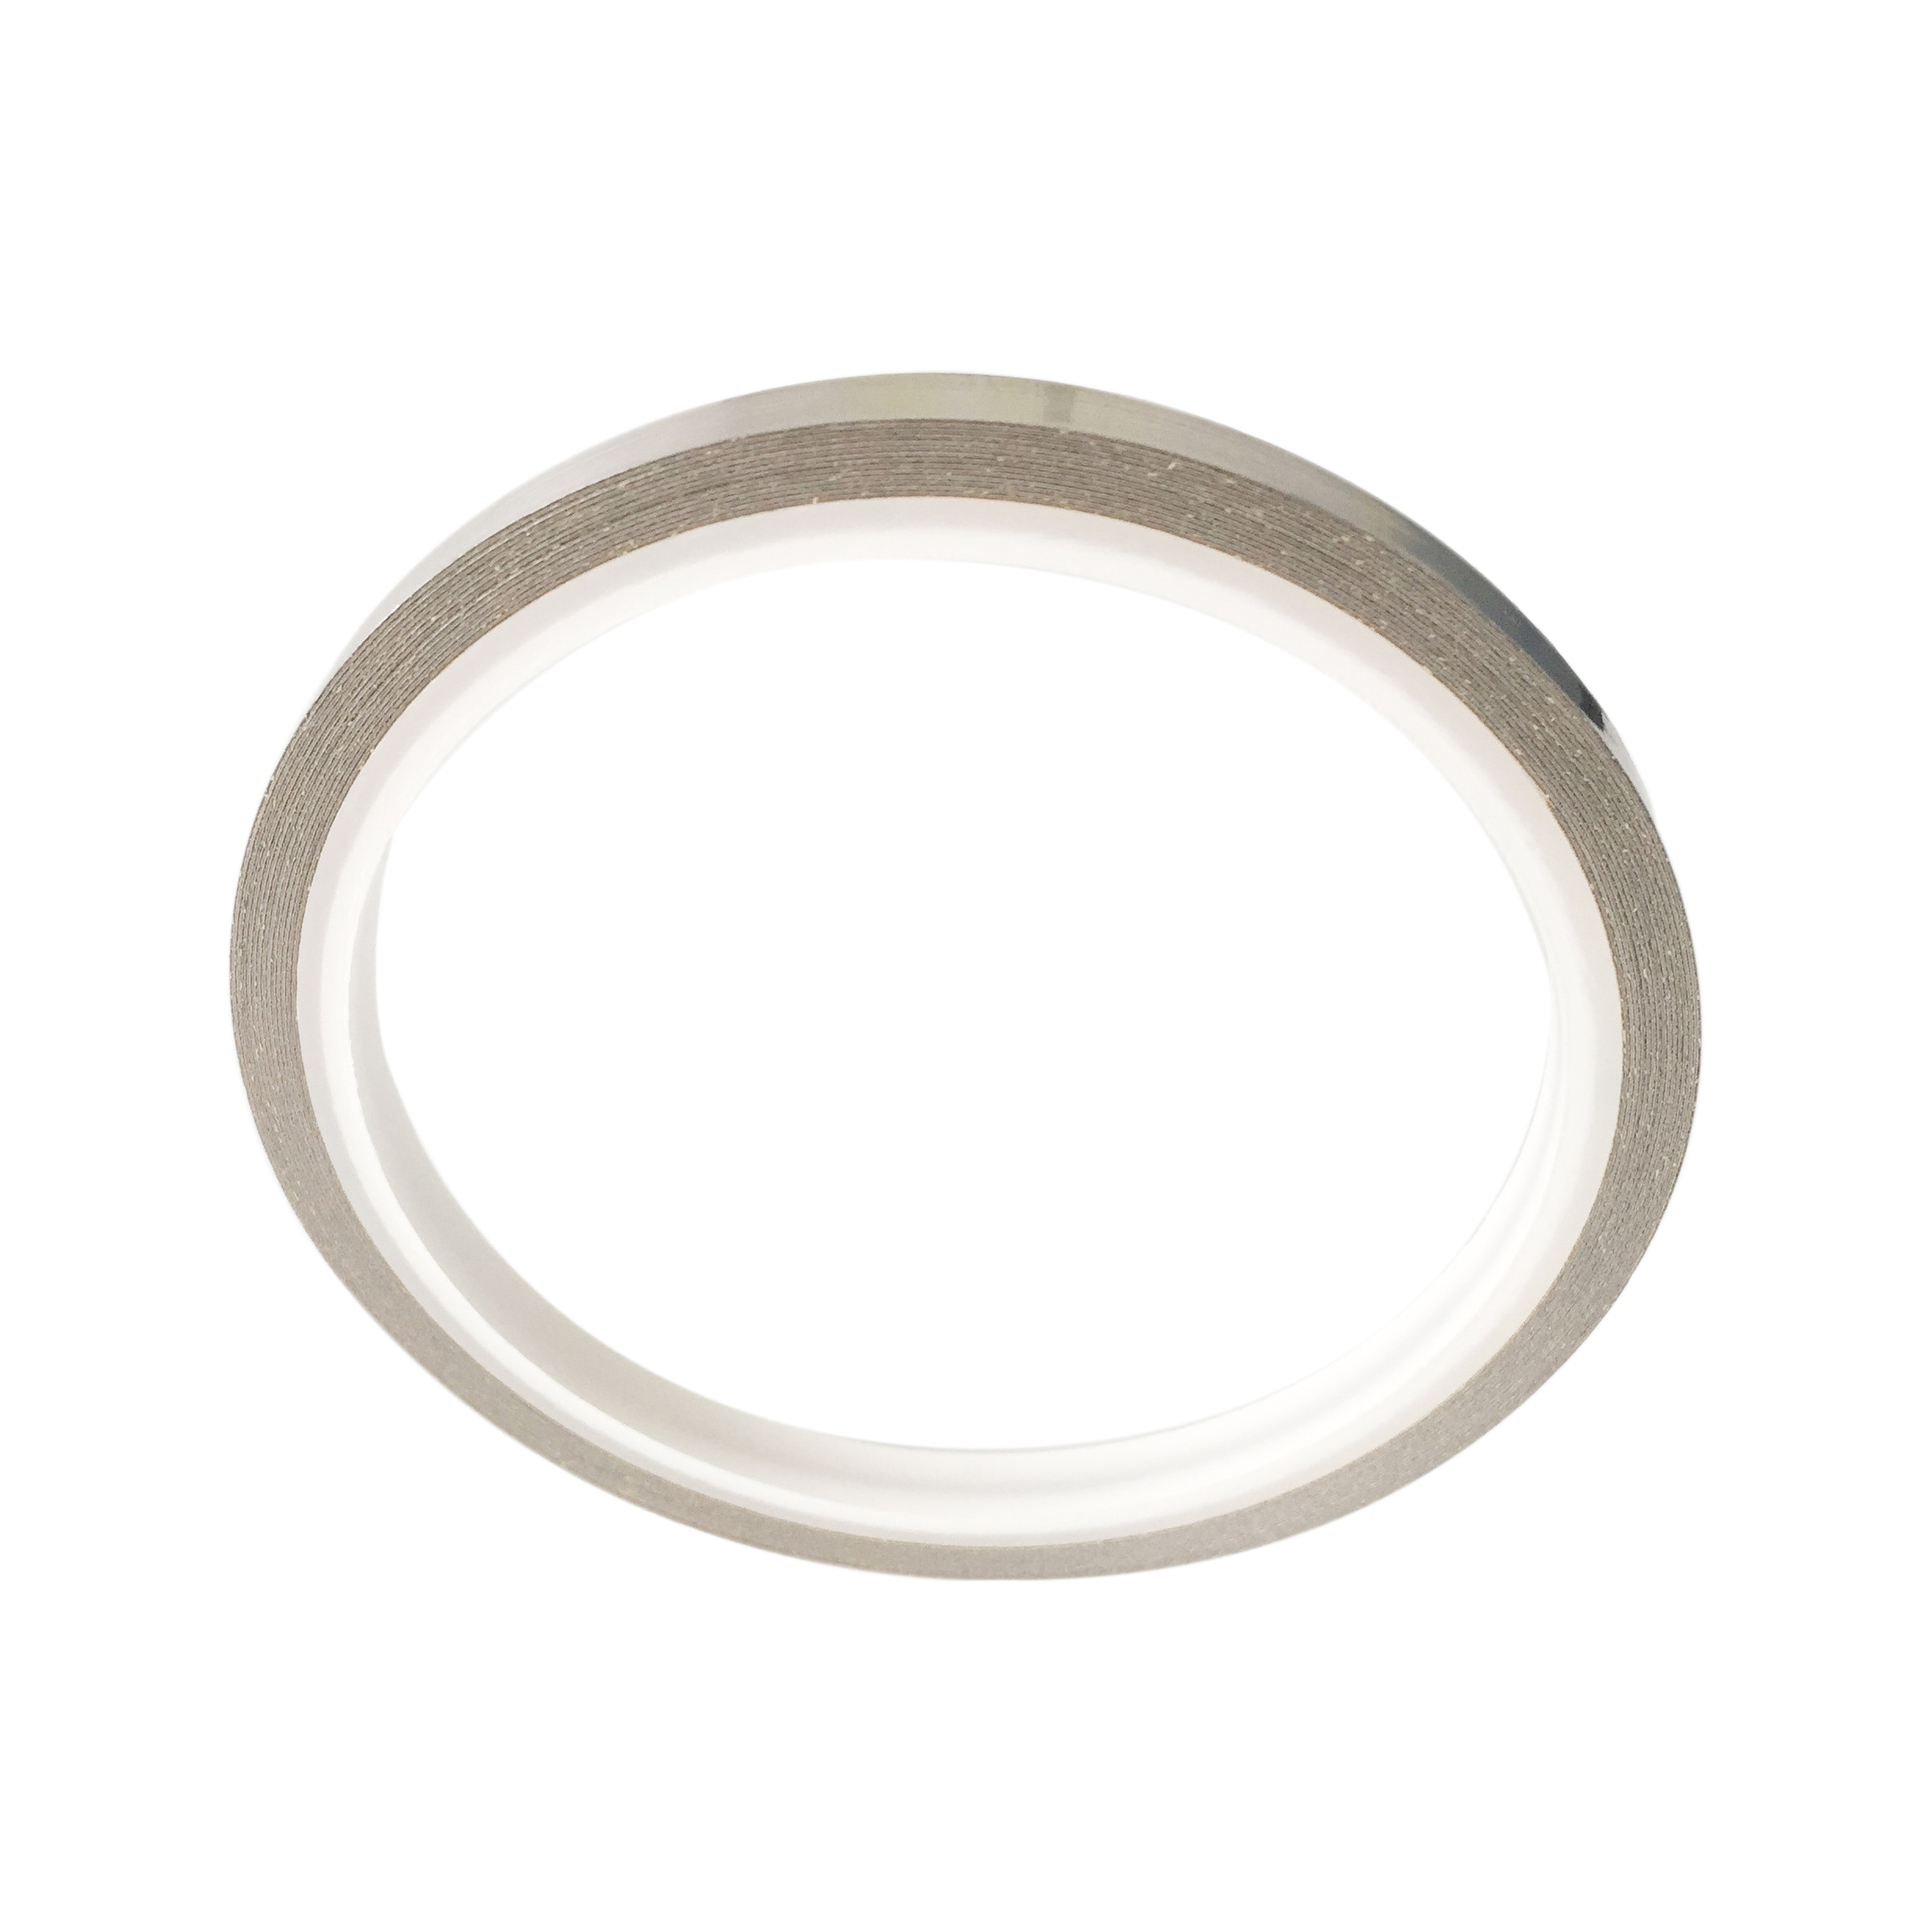 Tennis Racquet Lead Tape Weight Silver Self-Adhesion 4 Meter/Roll Add Weight & Power To Racquet